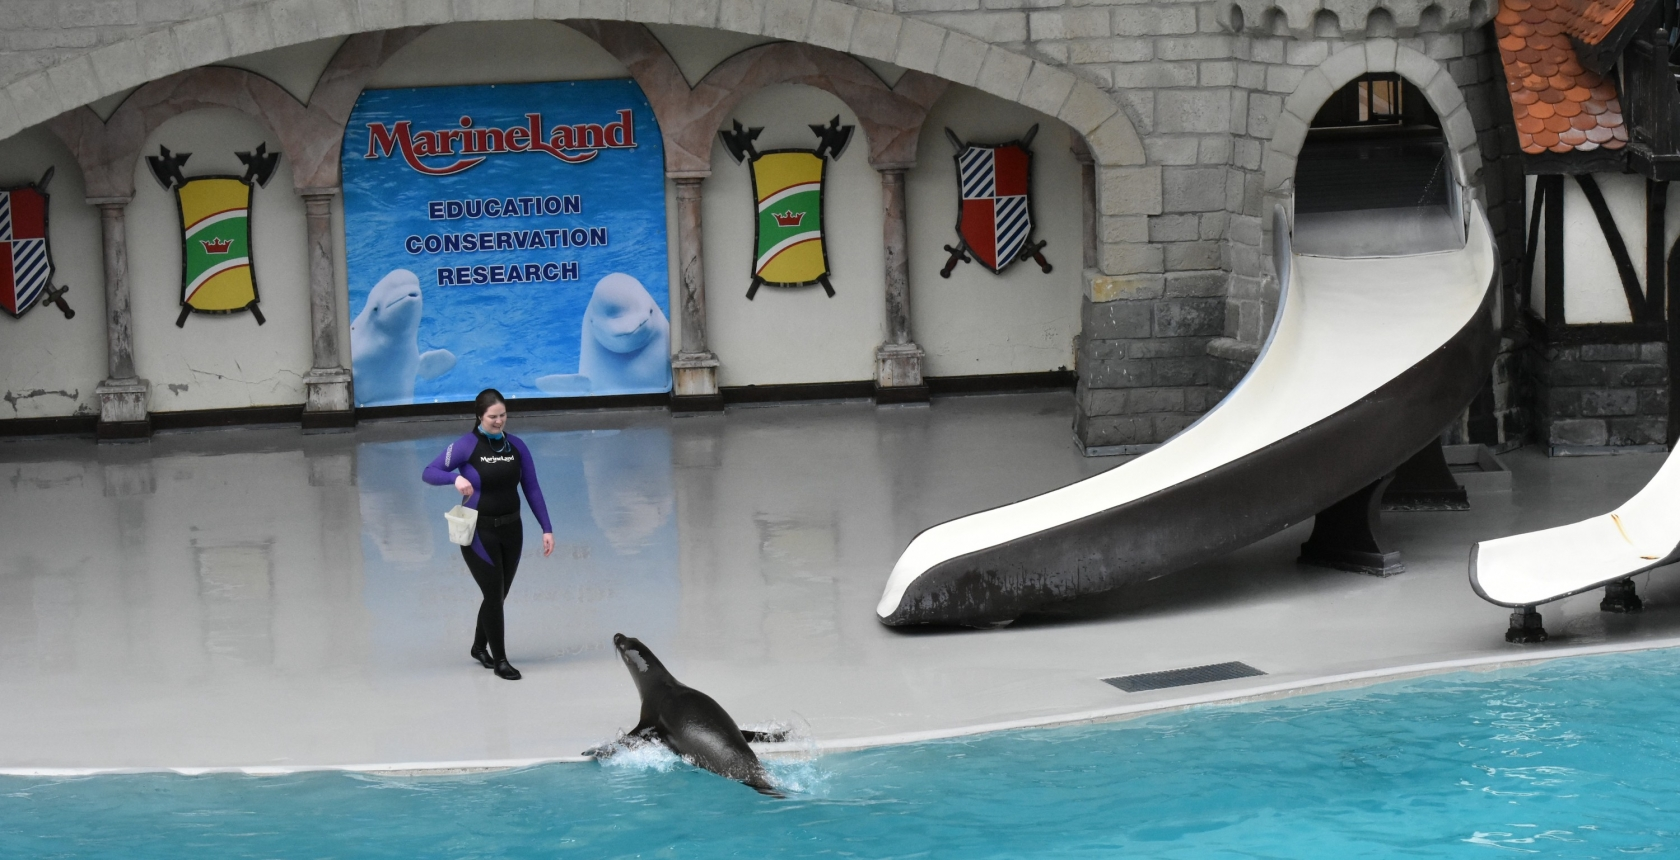 Marineland's Educational Presentation - Offered Daily at the King Waldorf Stadium - Marineland